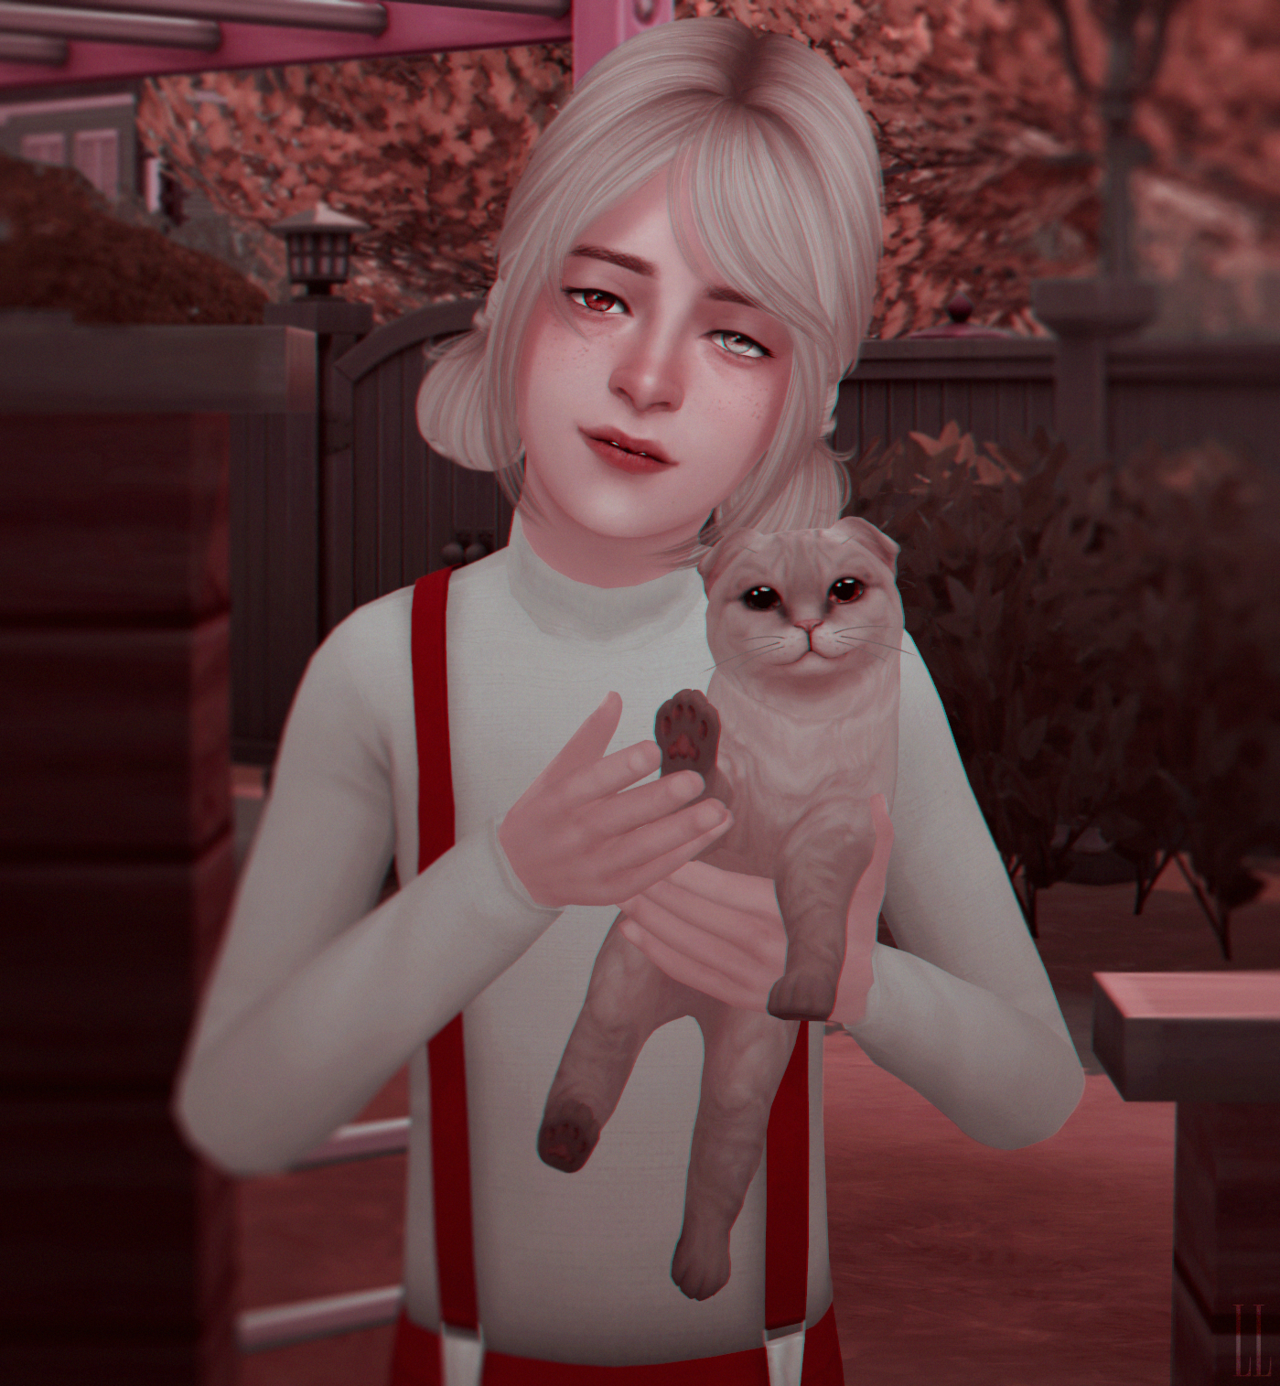 Female sim without name №16 and kittenGame Version 1.46